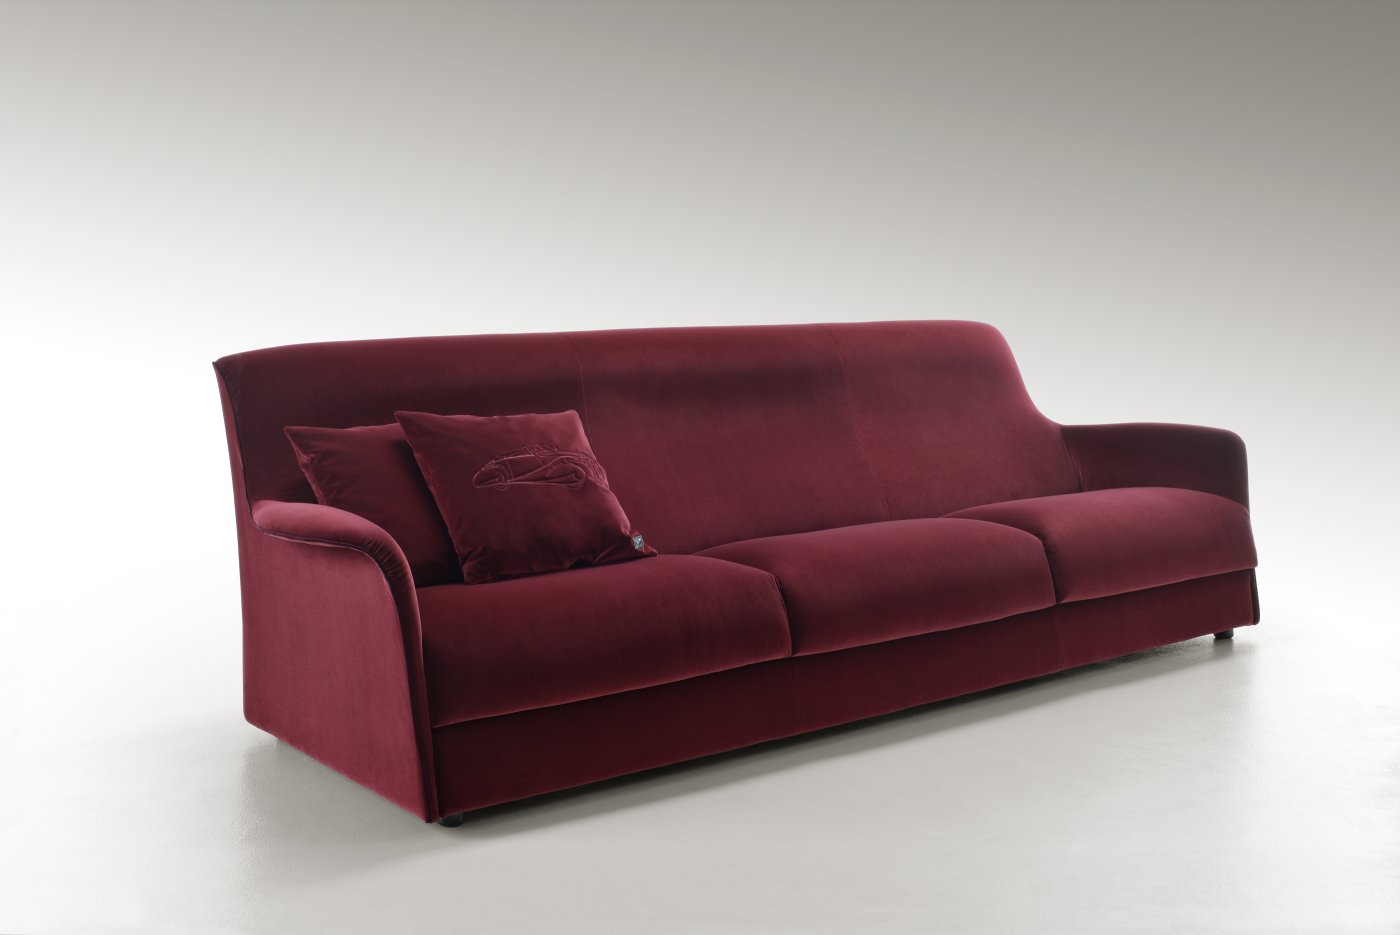 Bentley Announces Furniture Collection | Motrolix